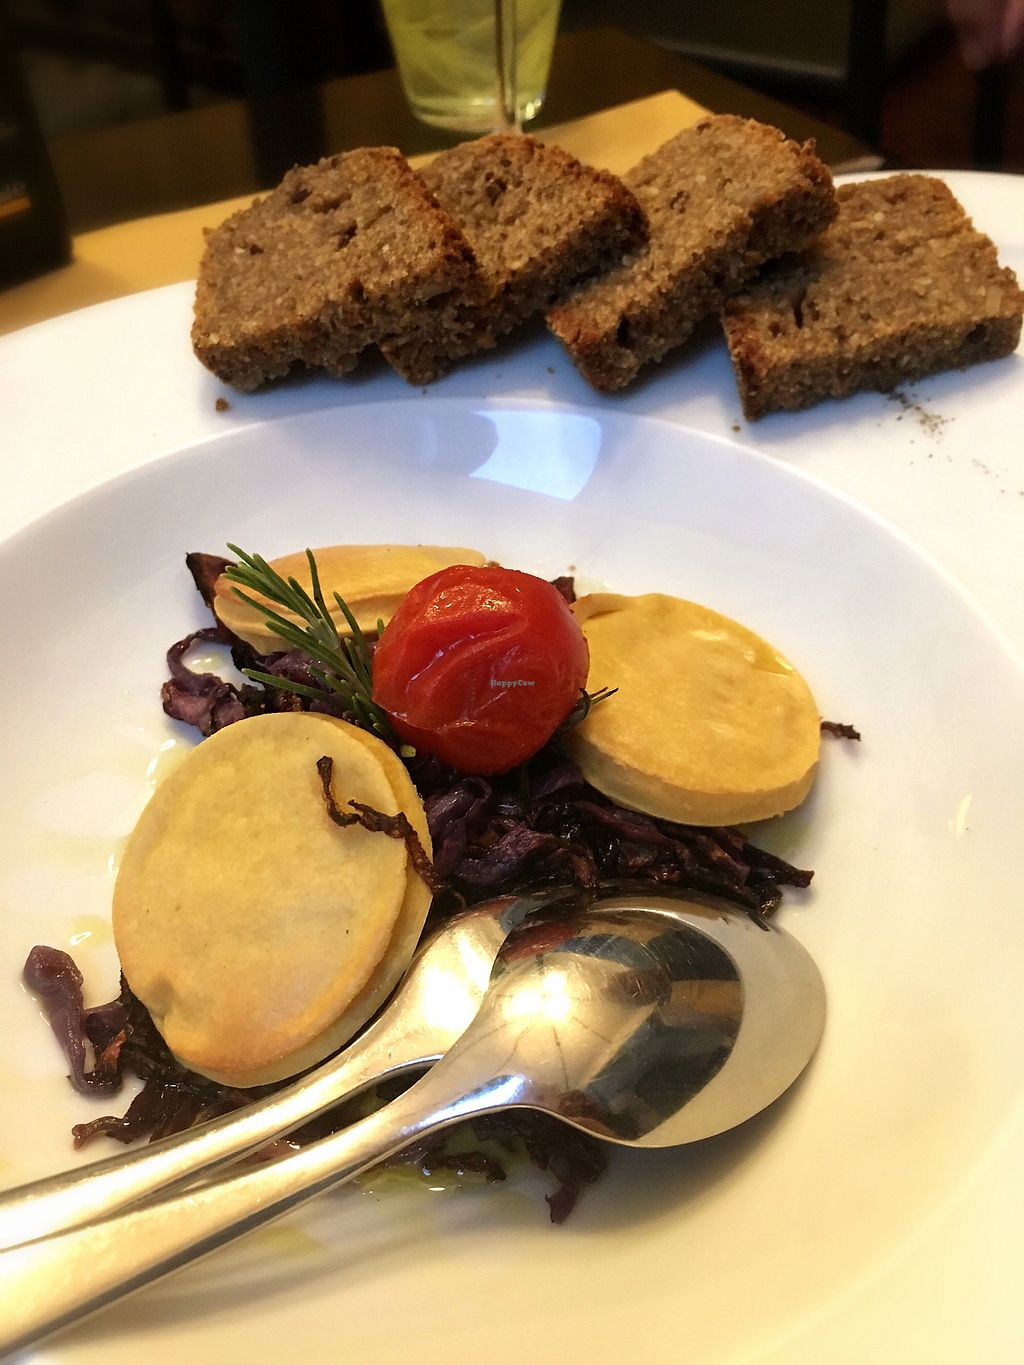 """Photo of Cantine Bernardini  by <a href=""""/members/profile/FranMcgarryArtist"""">FranMcgarryArtist</a> <br/>Vegan Chickpea dish  <br/> September 15, 2017  - <a href='/contact/abuse/image/80621/304652'>Report</a>"""